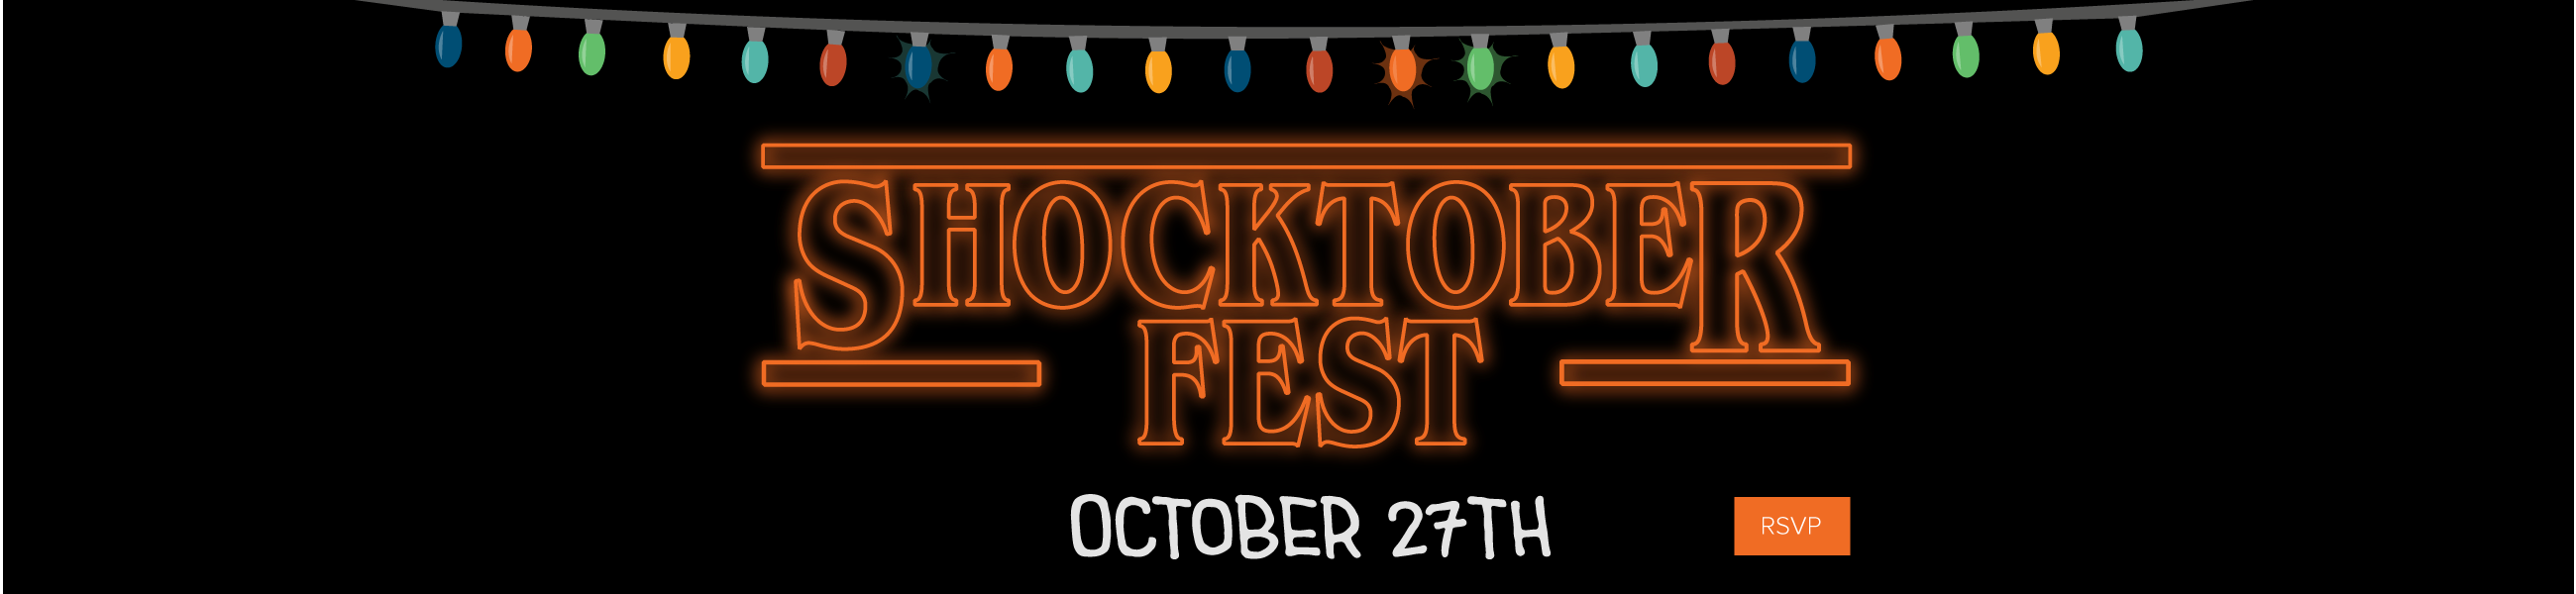 Shocktoberfest Invite 2017